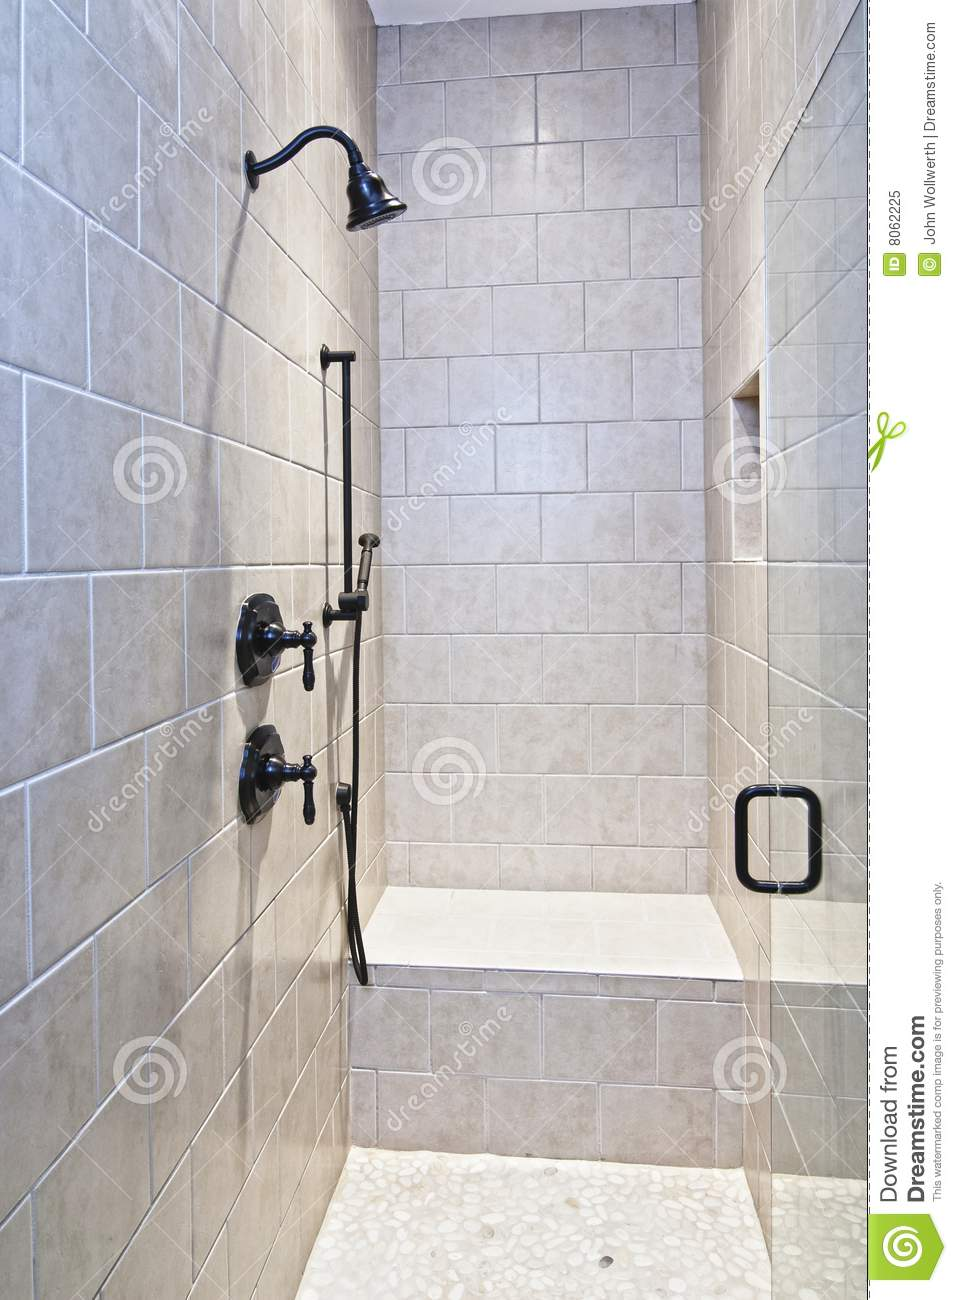 Badsanierung Ohne Fliesen Large Tile And Stone Shower Royalty Free Stock Photo